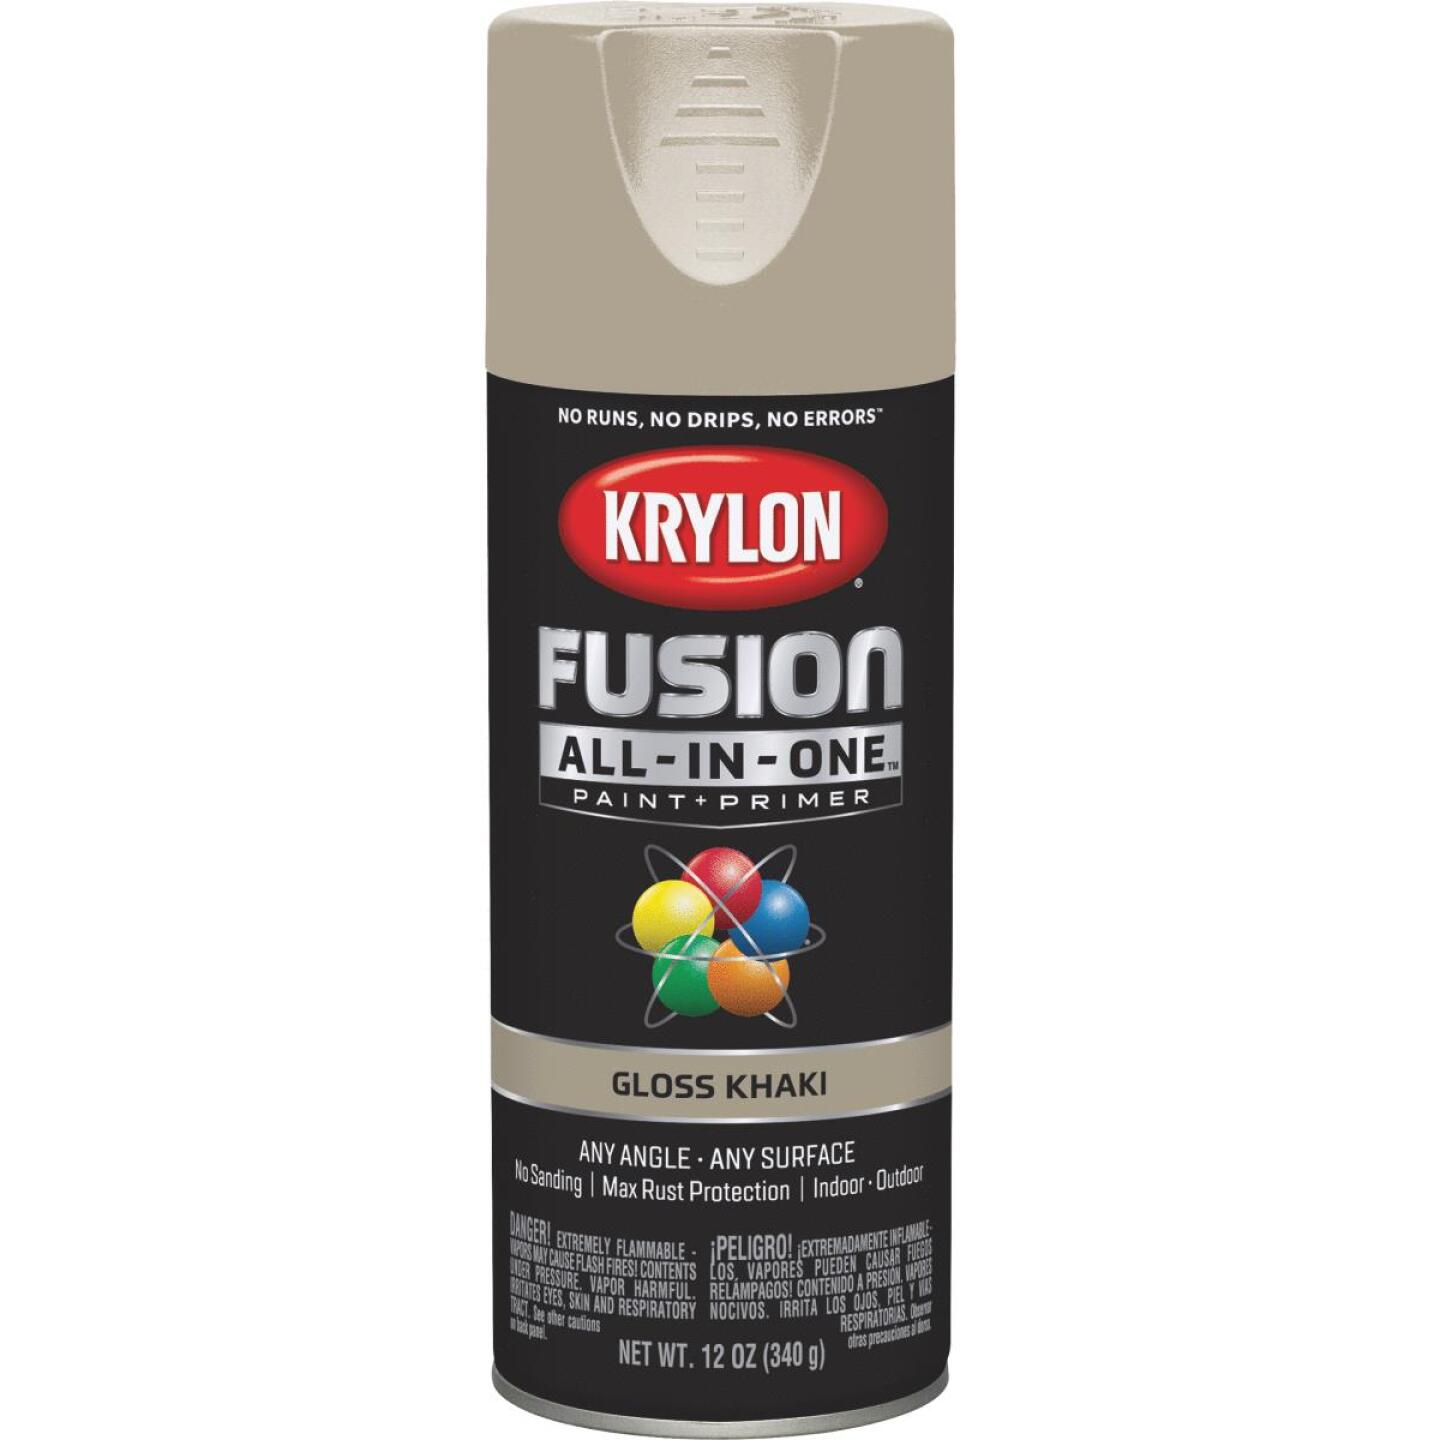 Krylon Fusion All-In-One Gloss Spray Paint & Primer, Khaki Image 1